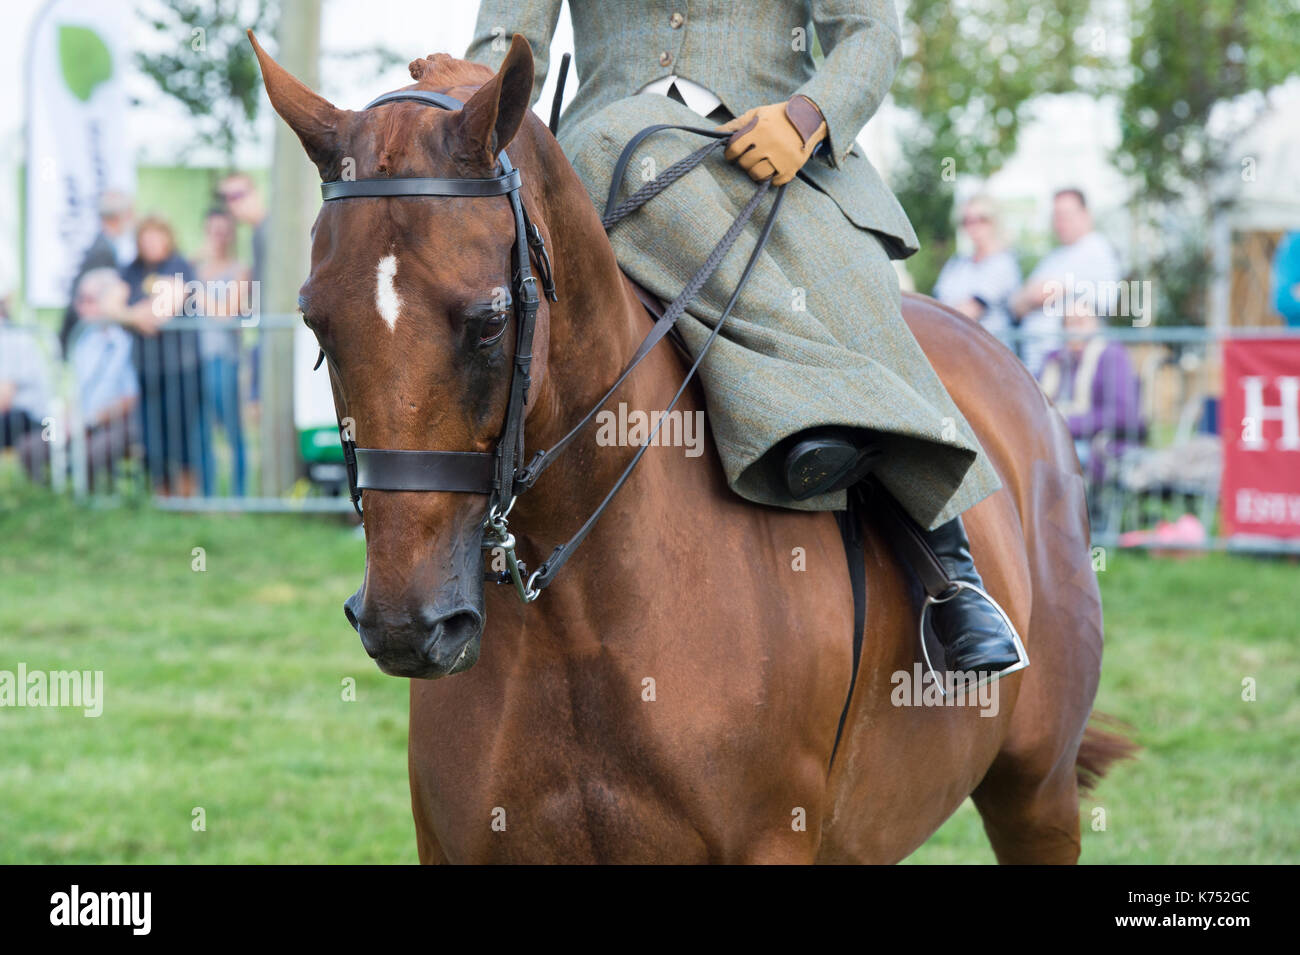 Woman riding sidesaddle on her horse at at Moreton in Marsh country show, Cotswolds, Gloucestershire, UK - Stock Image